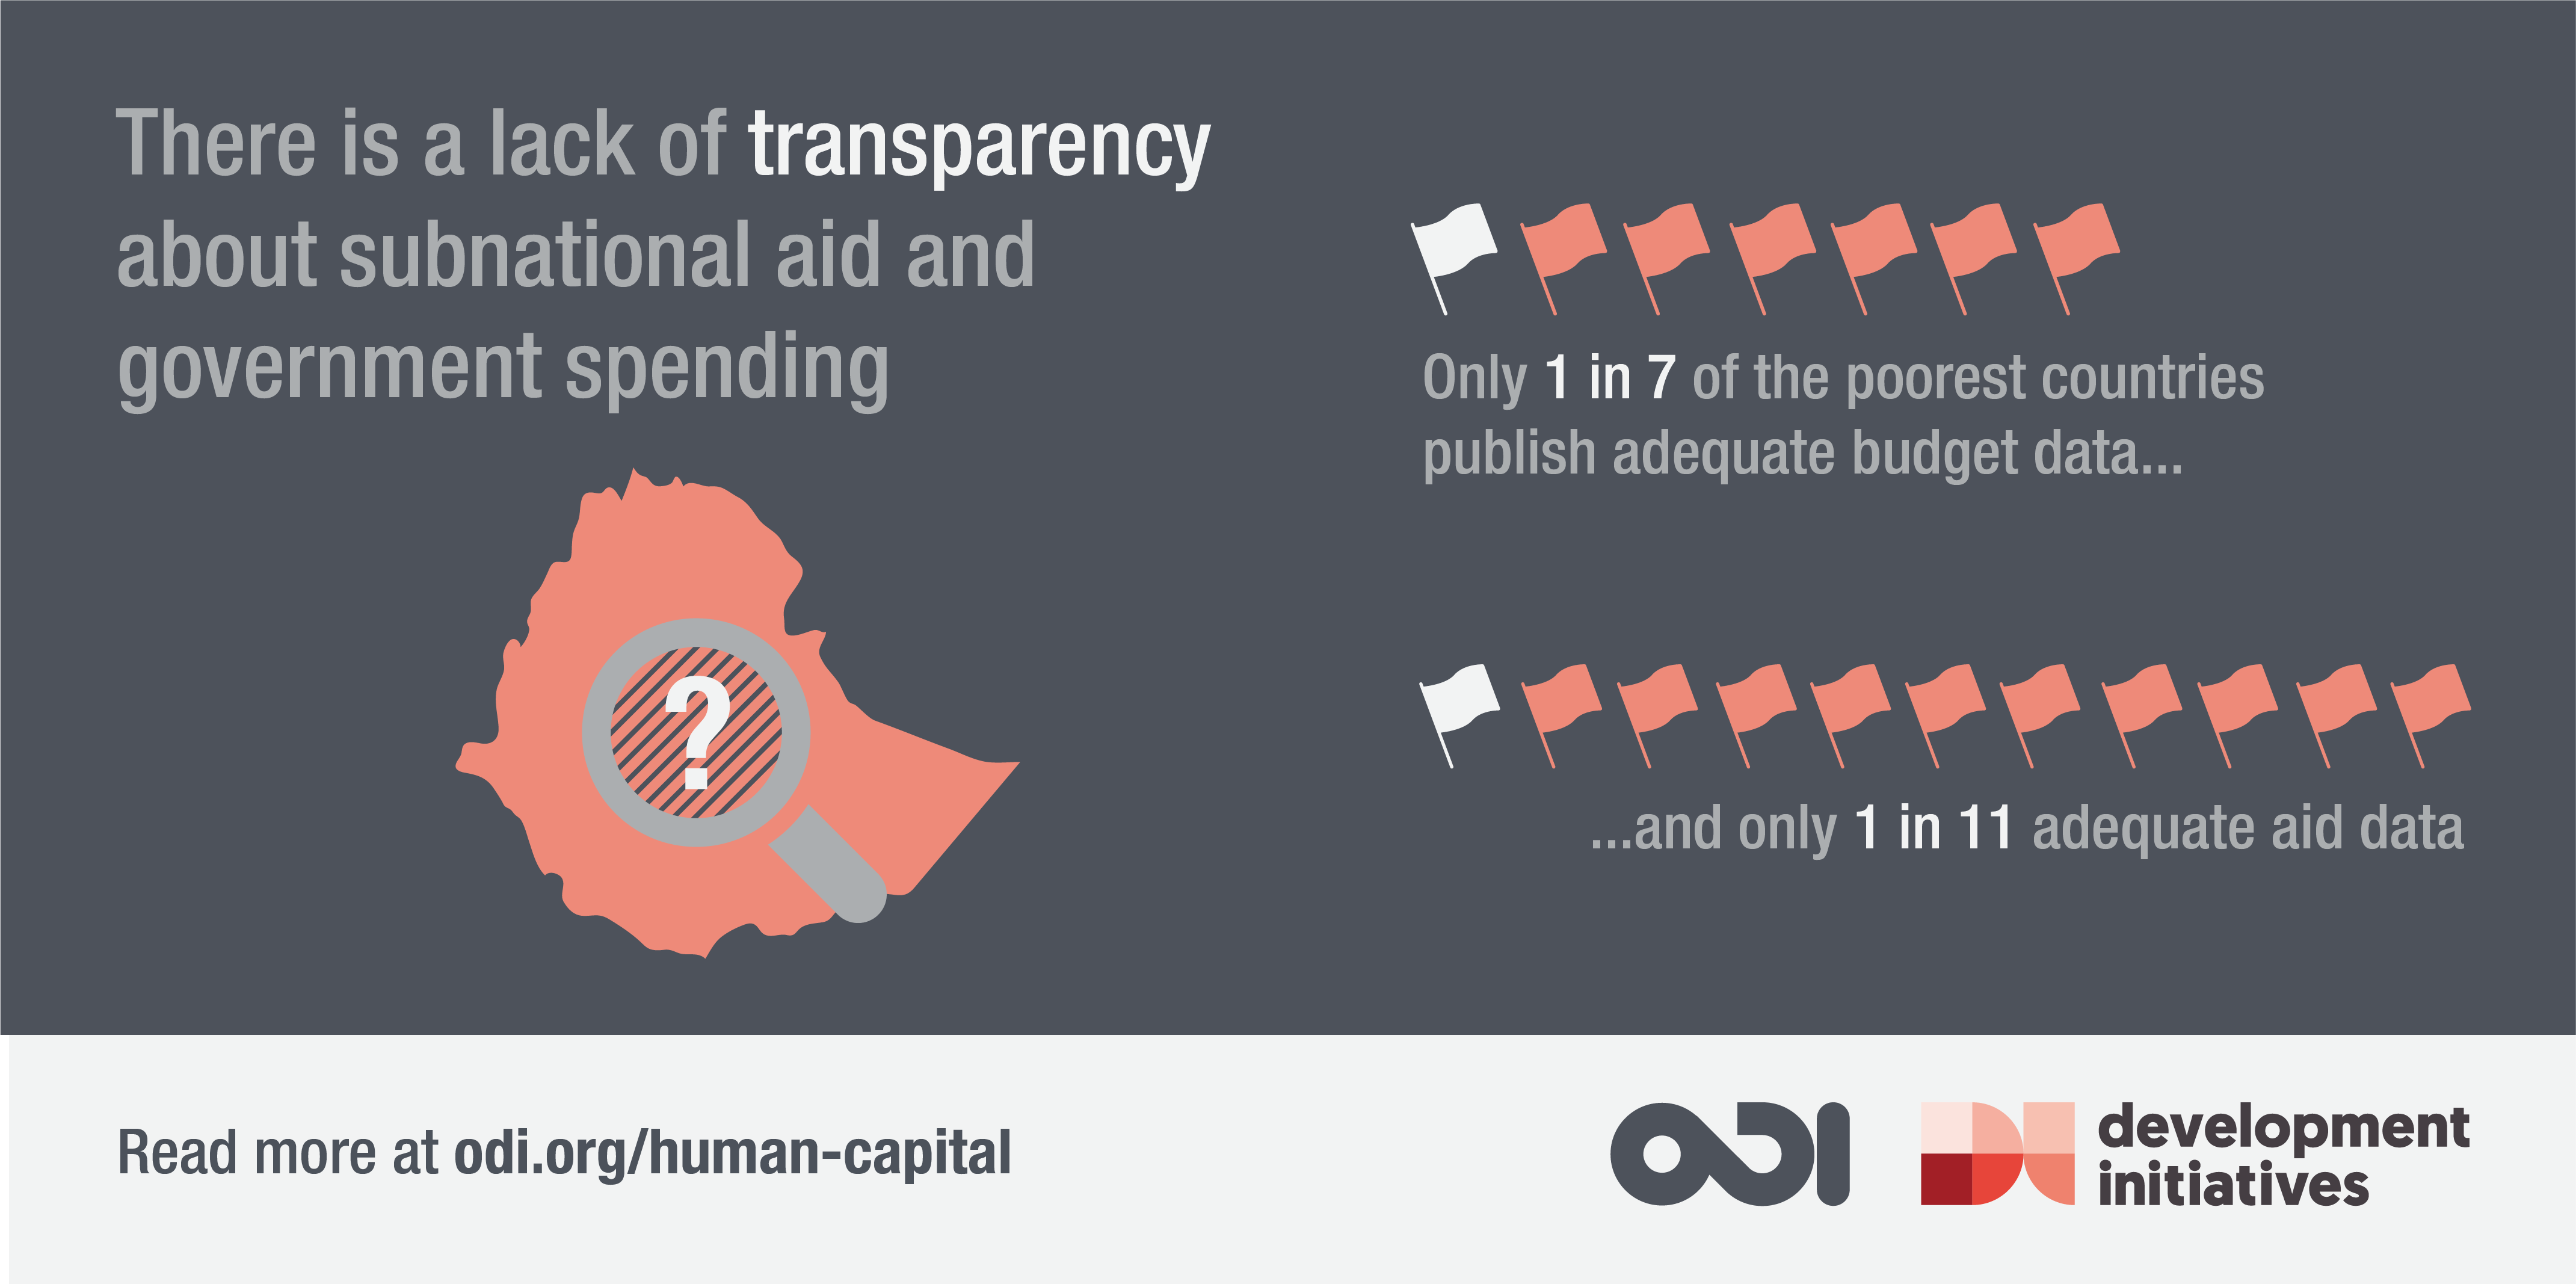 There is a lack of transparency about subnational aid and government spending